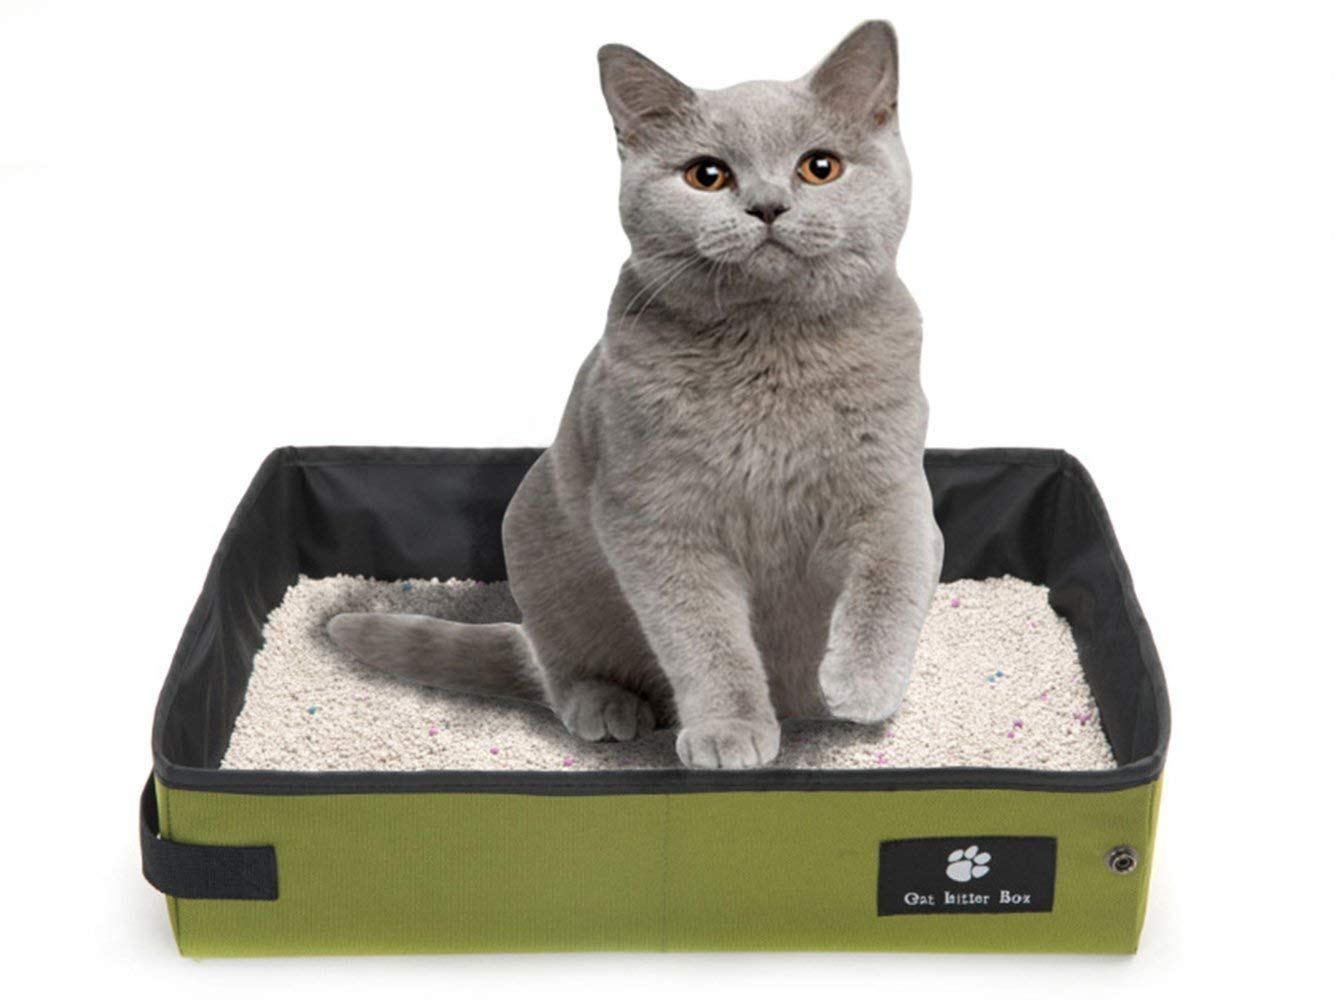 M Misyue Portable Cat Litter Carrier Outdoor Collapsible Litter Box Light Weight Soft Foldable Waterproof Pet Cat Easy Cleaning Litter Pan Portable for Travel (M)